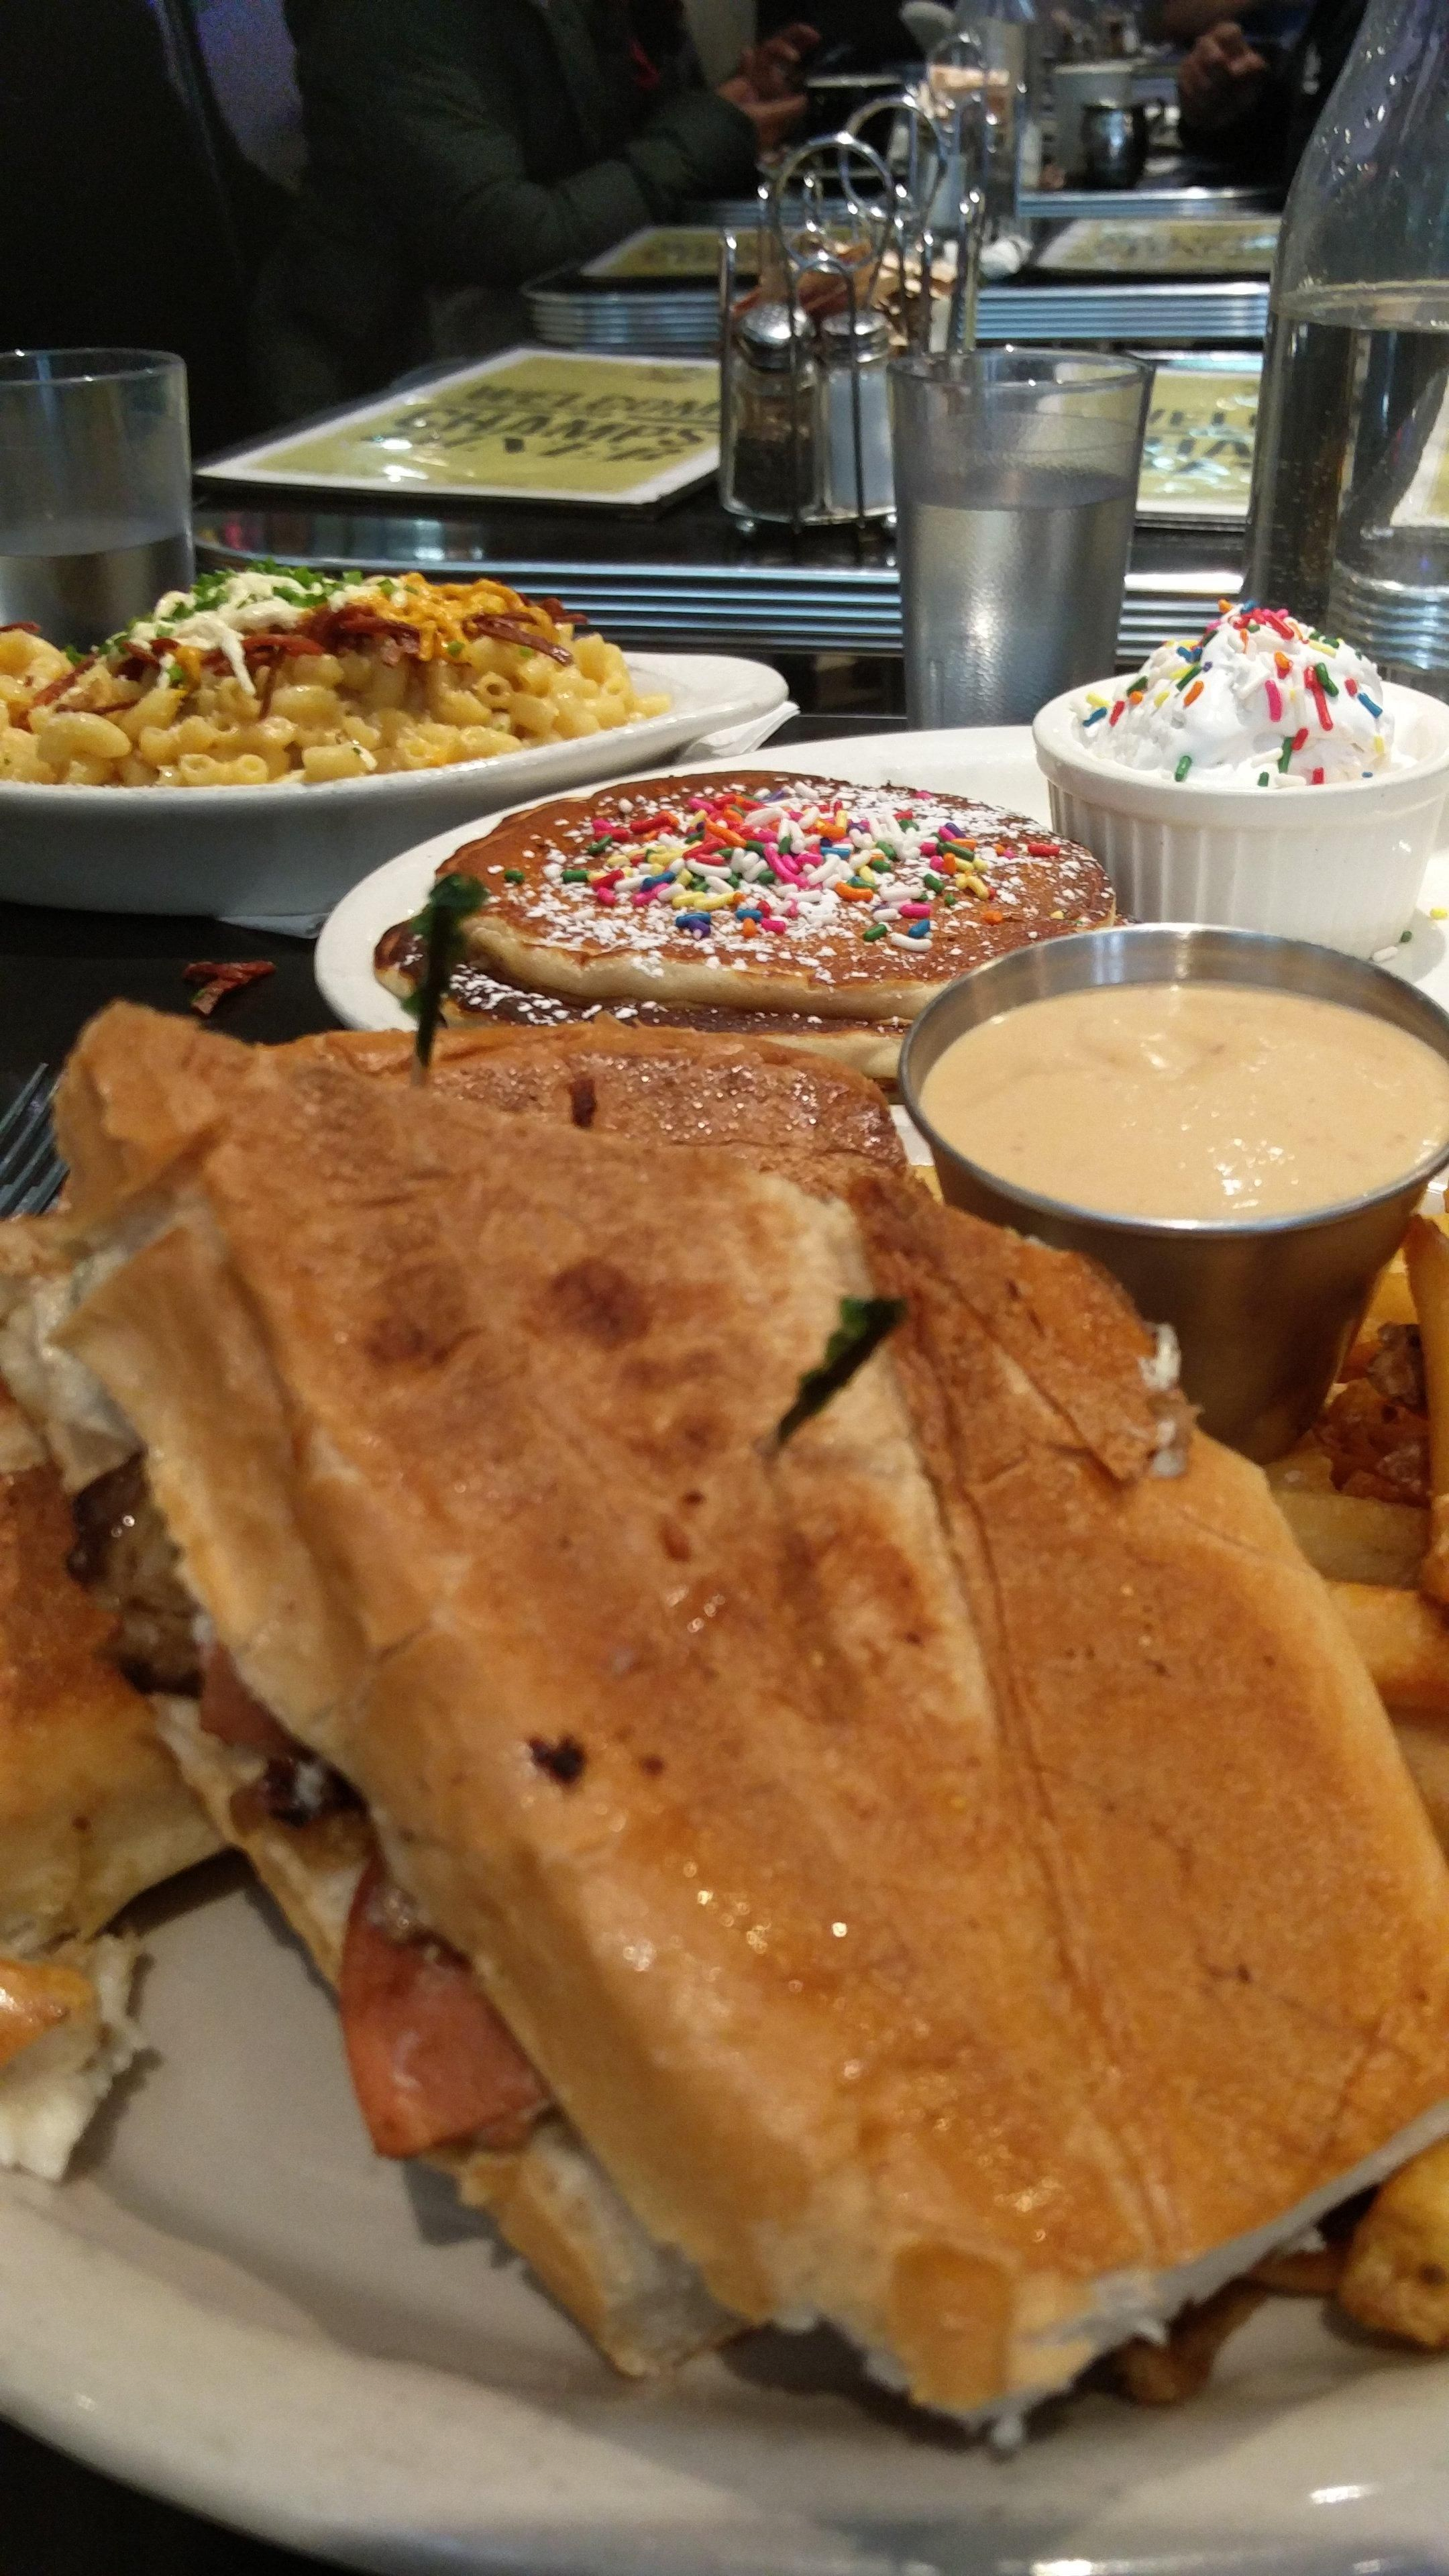 Brooklyn All Vegan Champs Diner Huge Menu The Cubano And Reuben Were Awesome Look Forward To Trying Many Other Dishes